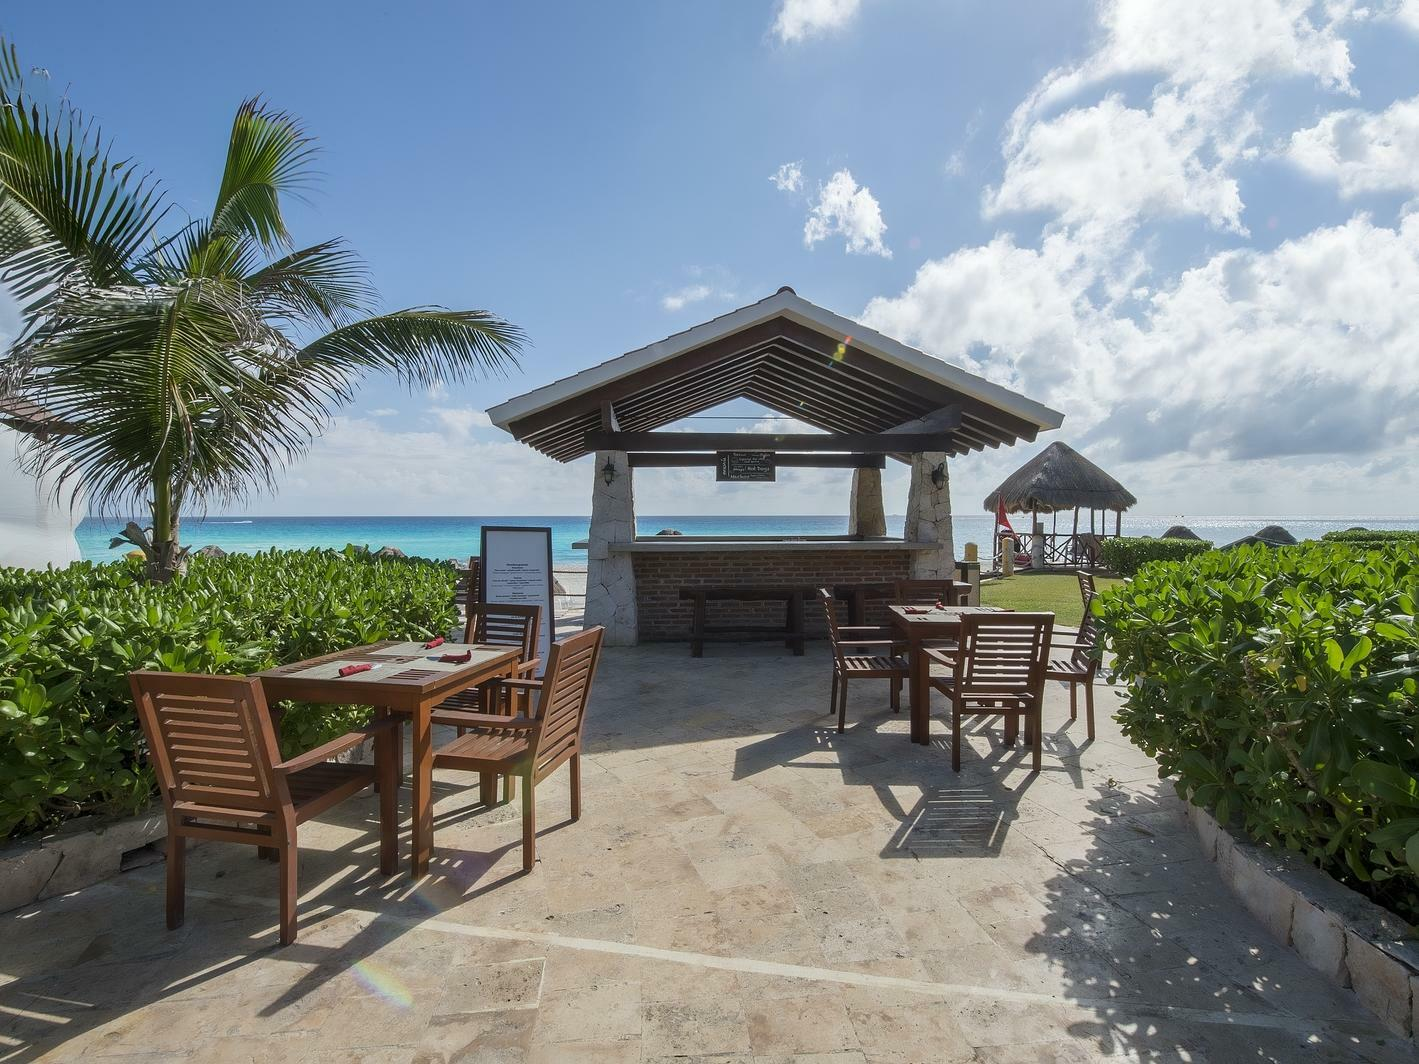 outdoor bar and dining tables with ocean view